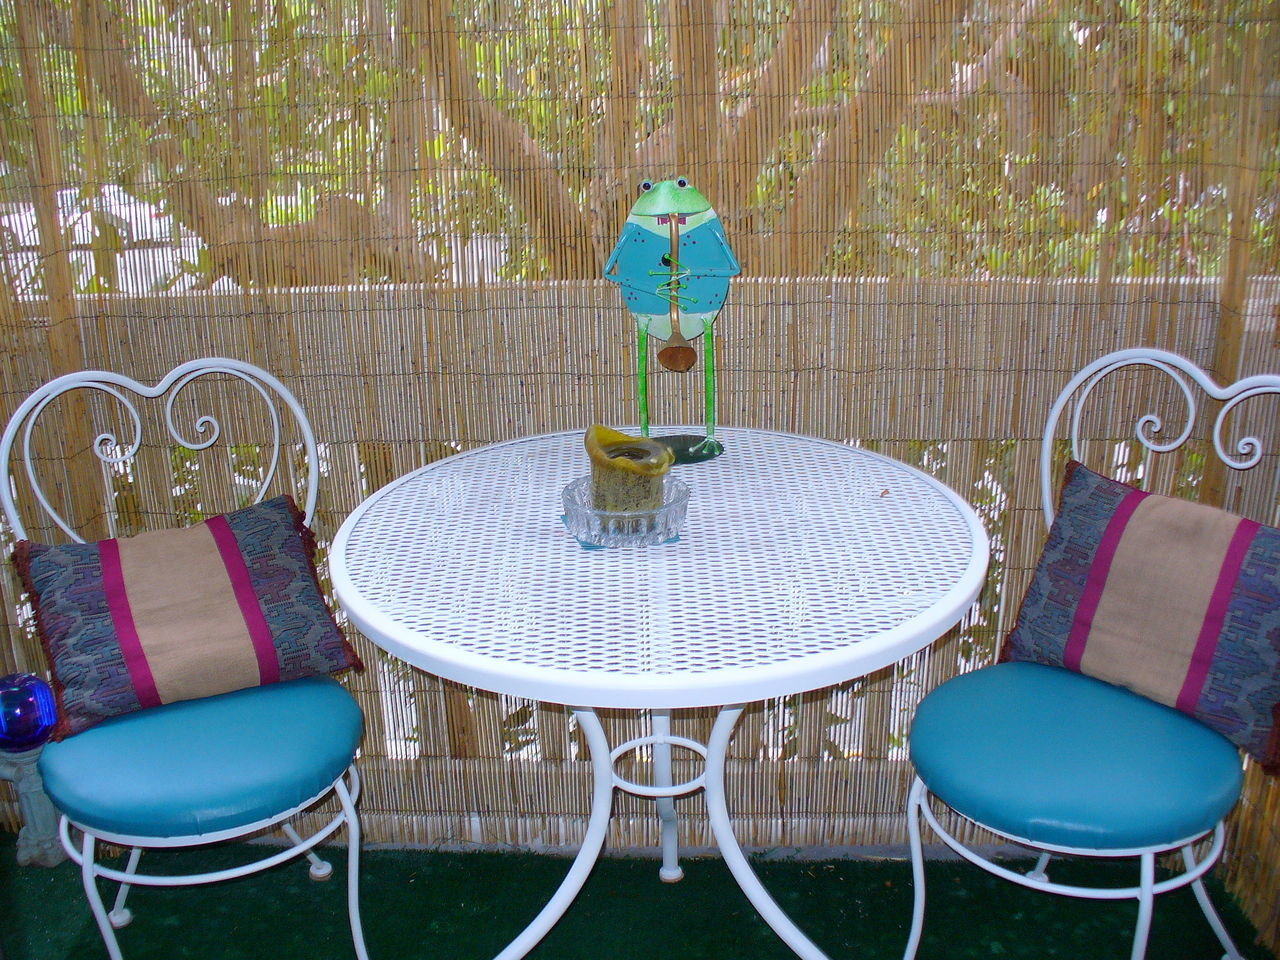 Bamboo Wall Bis Chair Empty Frog No People Outdoors Patio Table